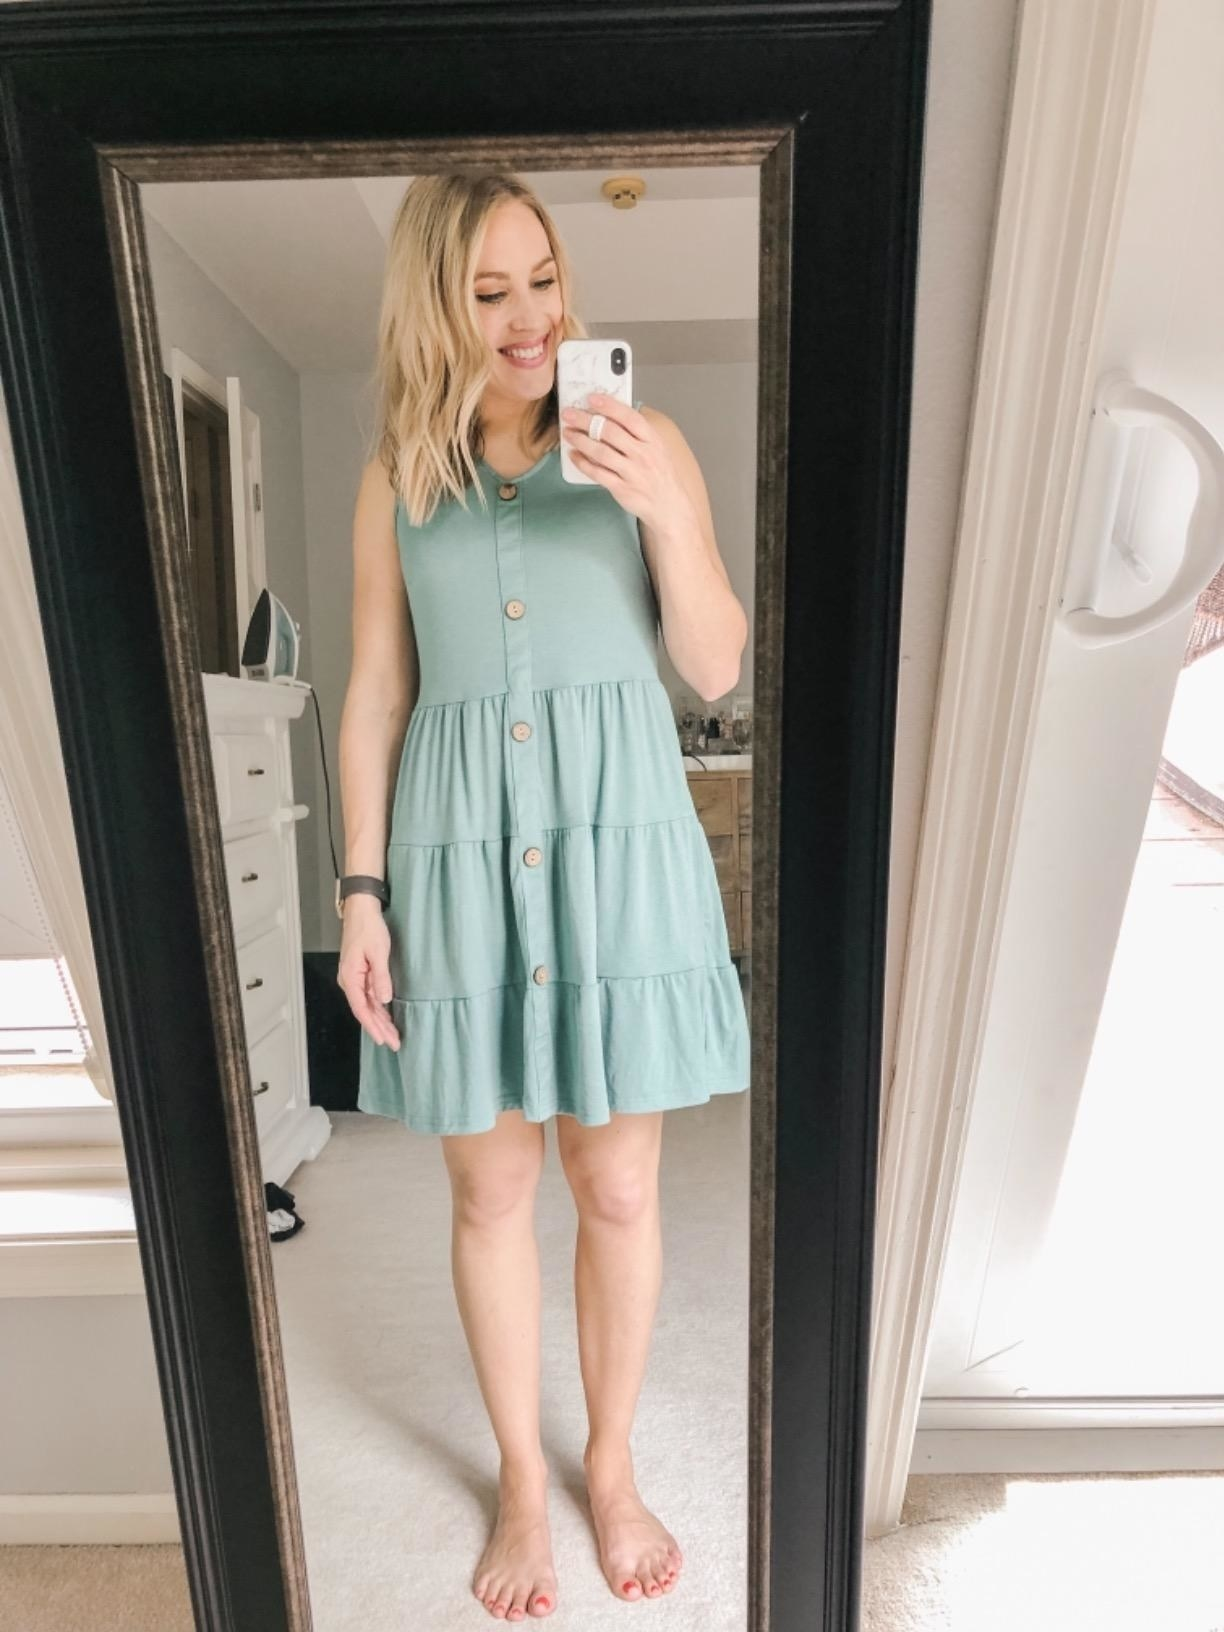 reviewer mirror selfie; they're wearing the light green Mitilly sleeveless v-neck button down dress